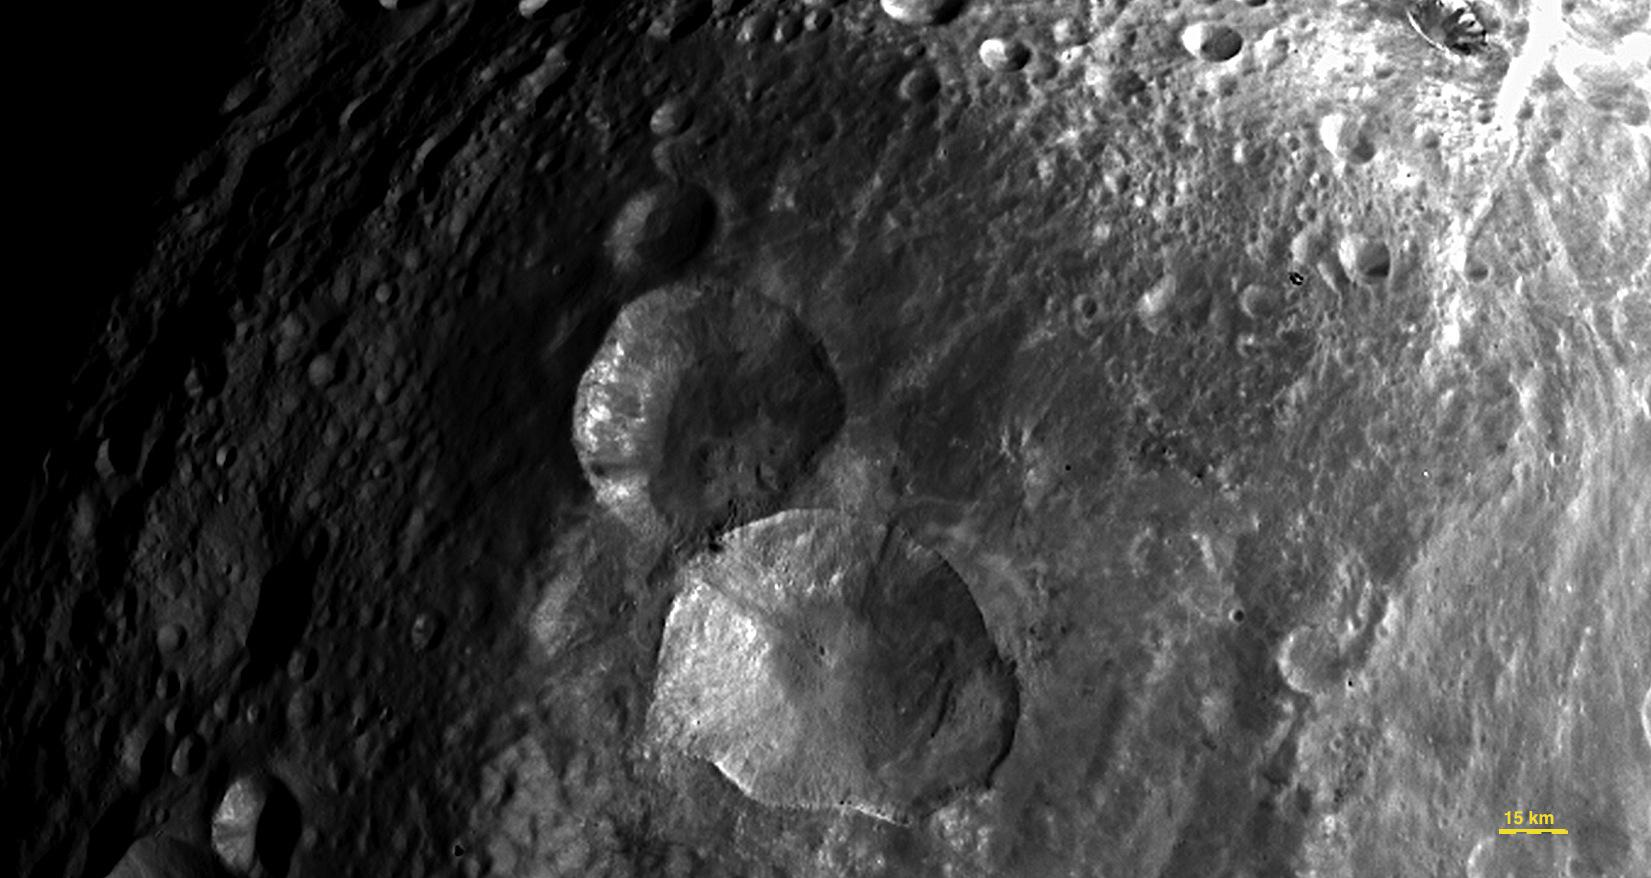 Dawn image of Snowman Craters on Vesta from 5200km on 24th July 2011 (NASA/JPL Caltech/UCLA/MPS/DLR/IDA)